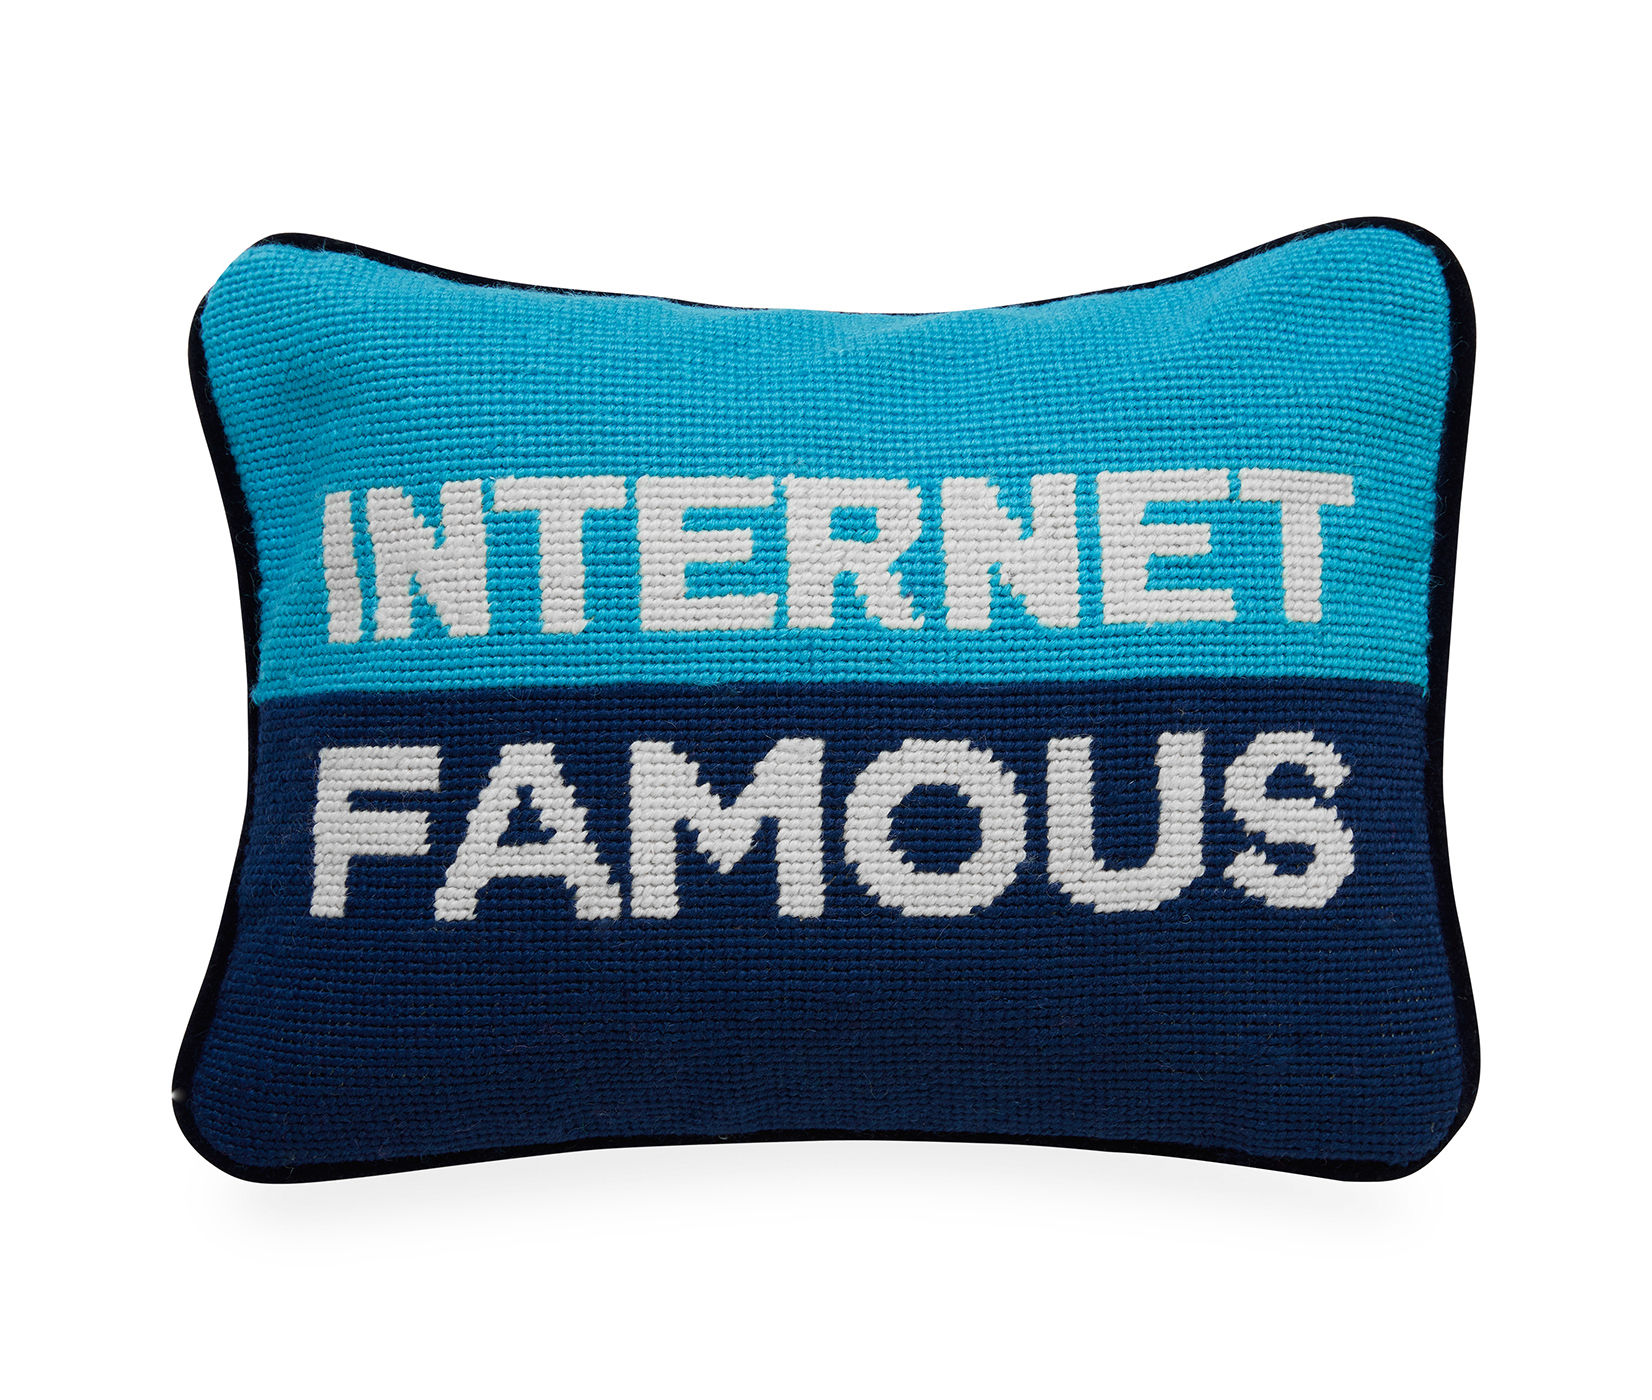 Decoration - Cushions & Poufs - Internet Cushion - / 30.5 x 23 cm - Hand-embroidered by Jonathan Adler - Turquoise blue & navy blue -  Duvet,  Plumes, Velvet, Wool